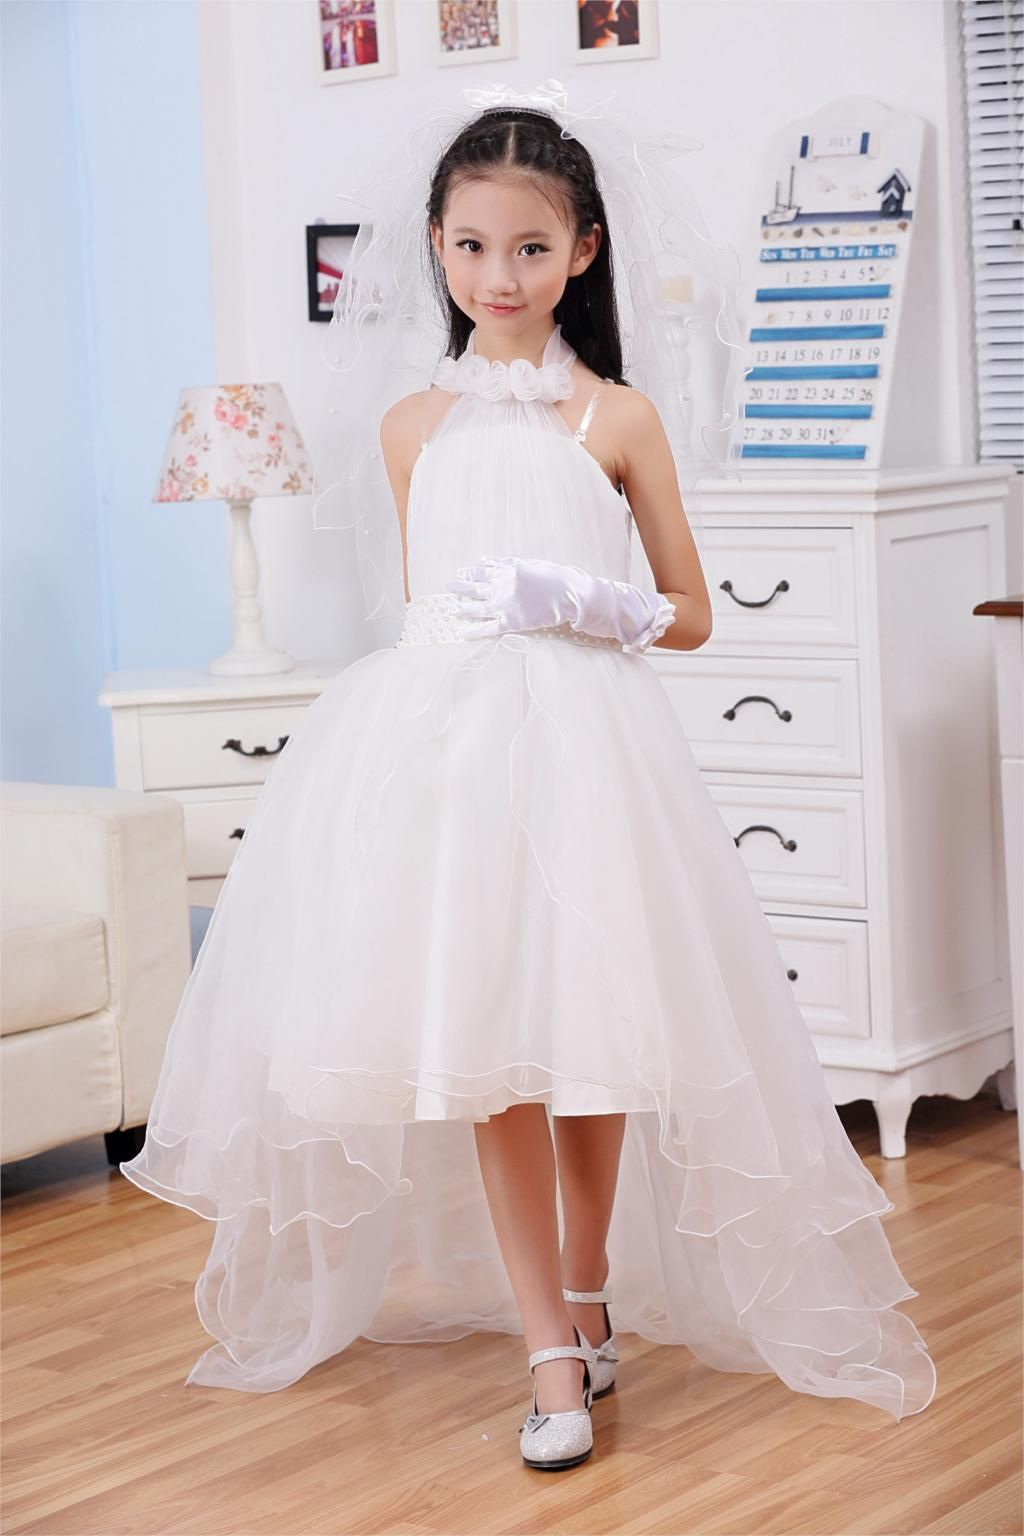 Cheap dress cinderella, Buy Quality dress high directly from China dress market Suppliers: New Arrival Beaded Flower Girl Dresses Pretty Christmas Dresses Vestidos De Comunion Princess White Girl's Pageant Dresses.